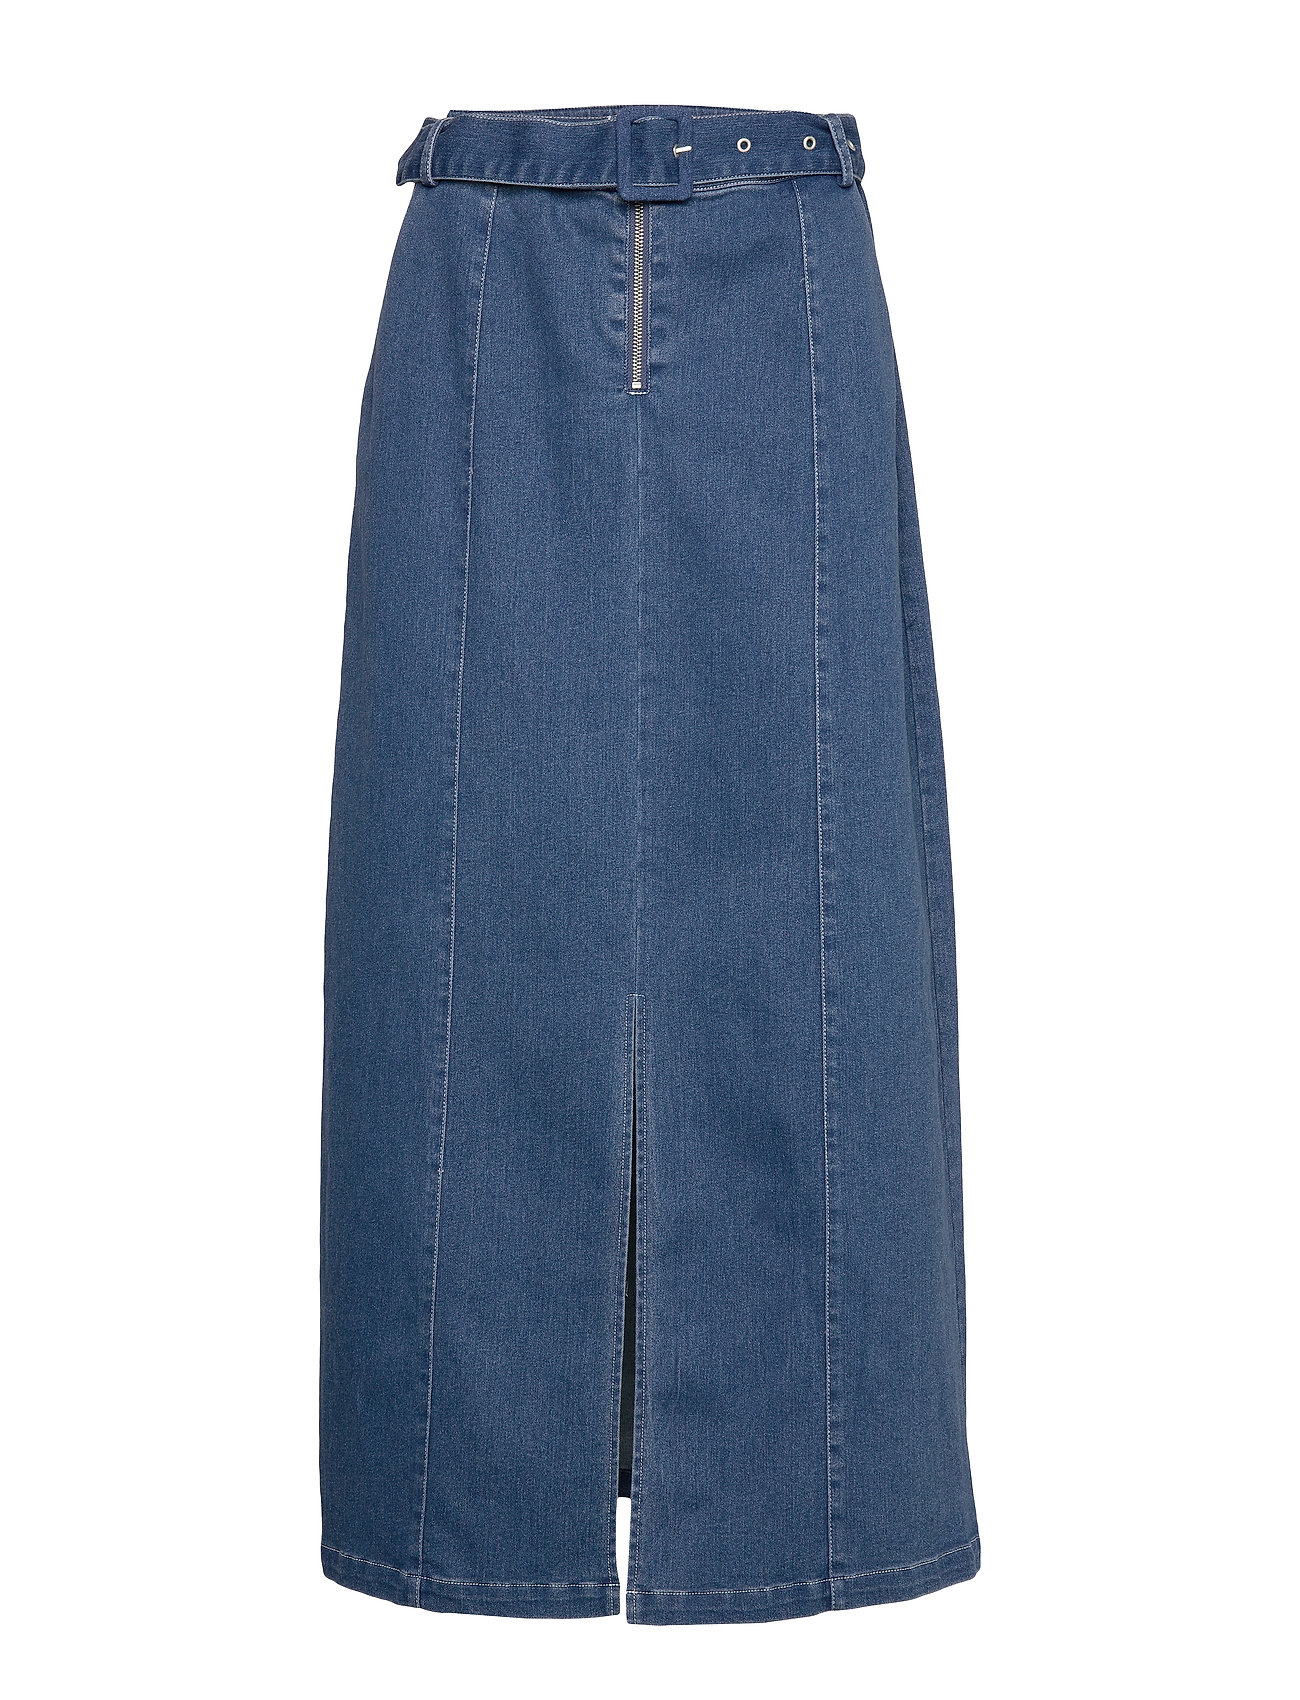 Résumé Paige skirt - DARK DENIM